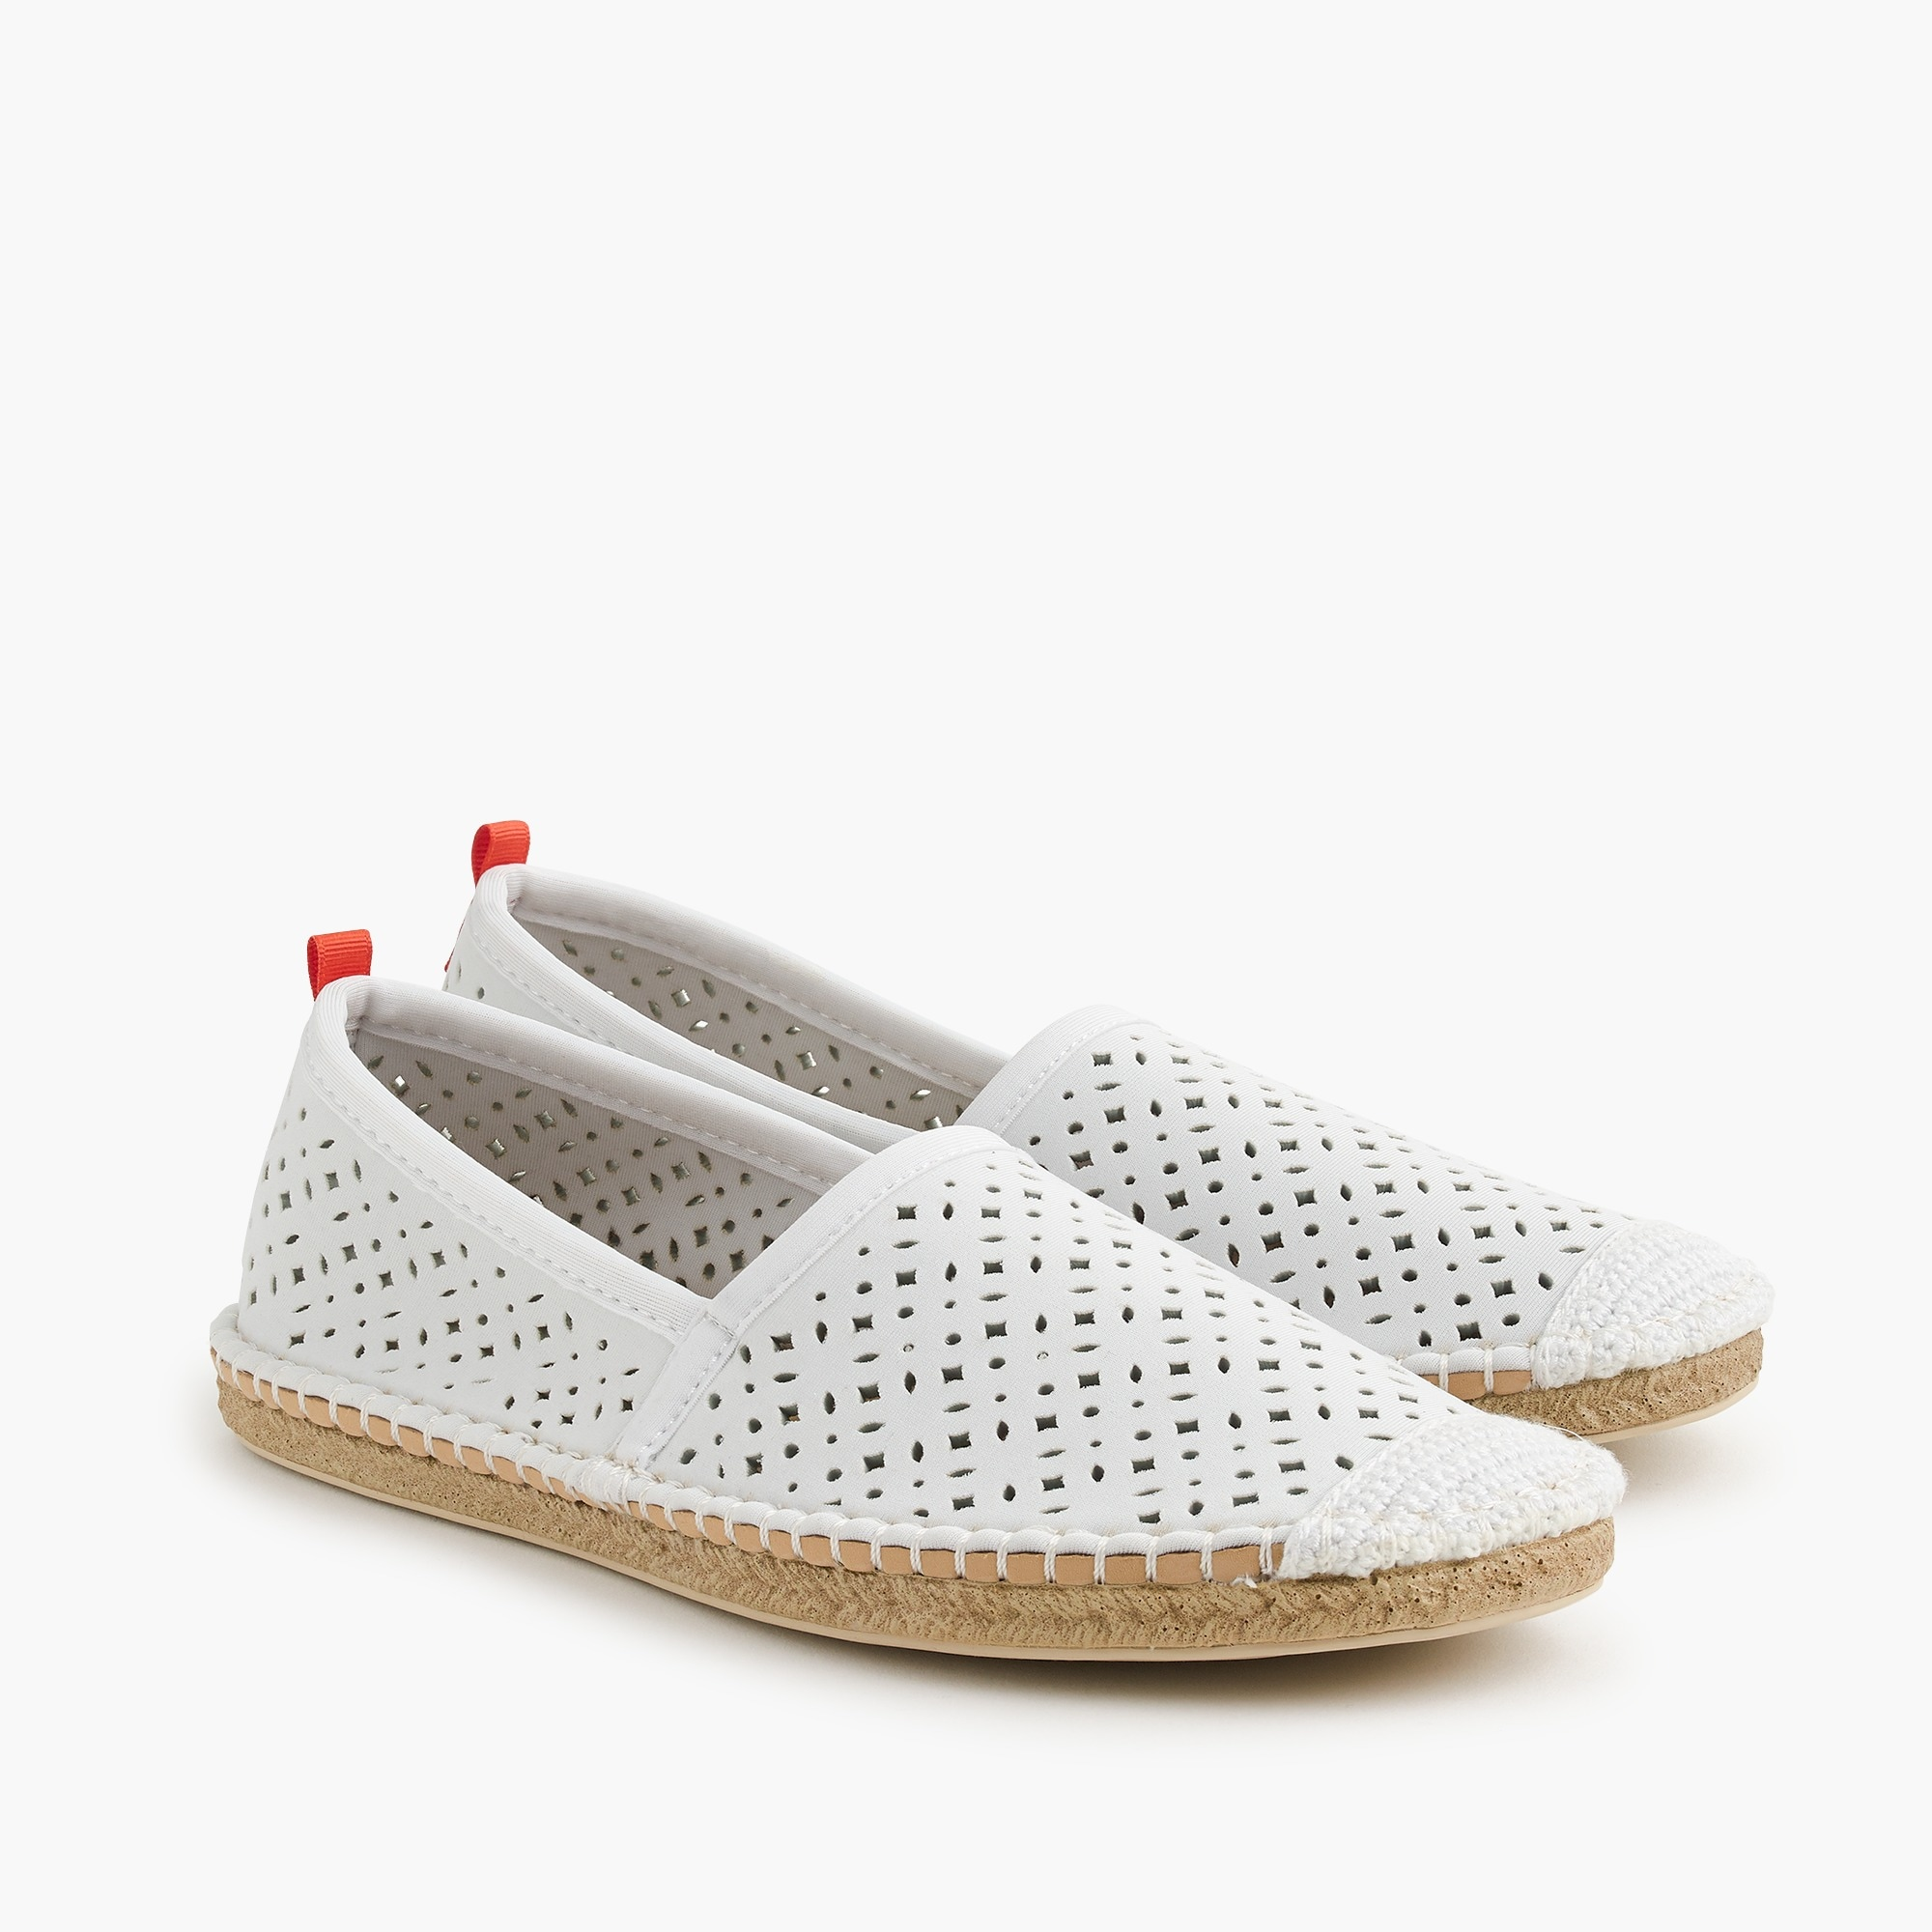 womens Sea Star® Beachcomber espadrille water shoes